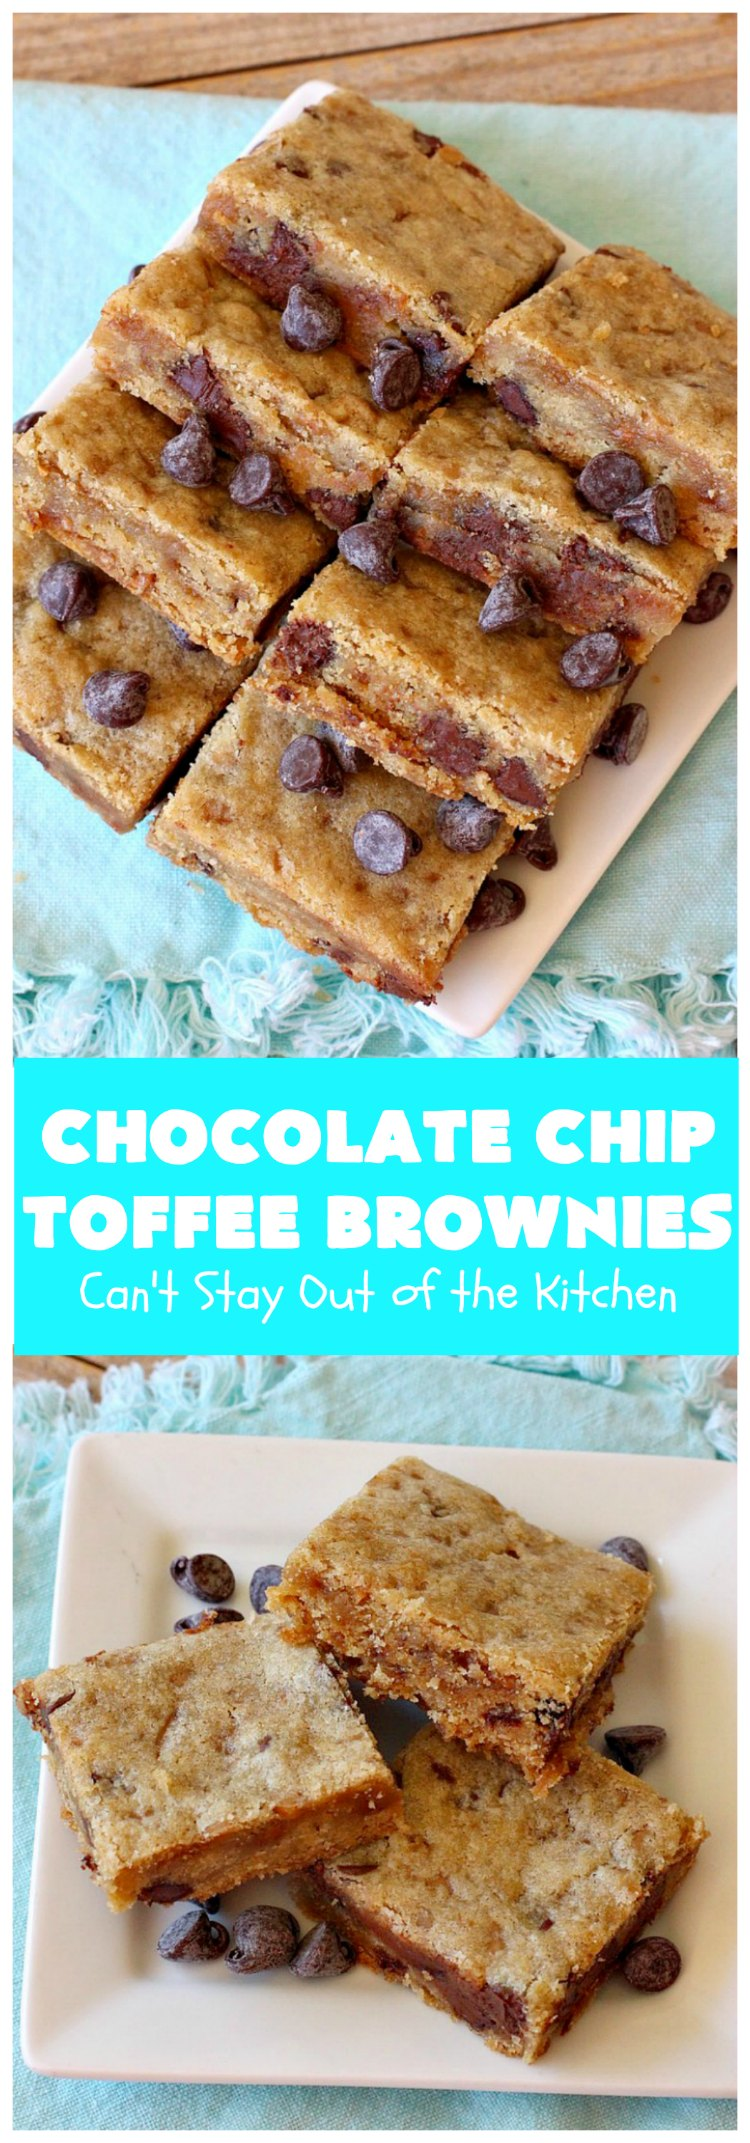 Chocolate Chip Toffee Brownies | Can't Stay Out of the Kitchen | these amazing #PaulaDeen #brownies will knock your socks off! They're filled with #ChocolateChips & #HeathEnglishToffeeBits. Every bite will have you drooling! #dessert #cookies #toffee #chocolate #ChocolateDessert #holiday #HolidayDessert #ToffeeDessert #ChocolateChipToffeeBrownies